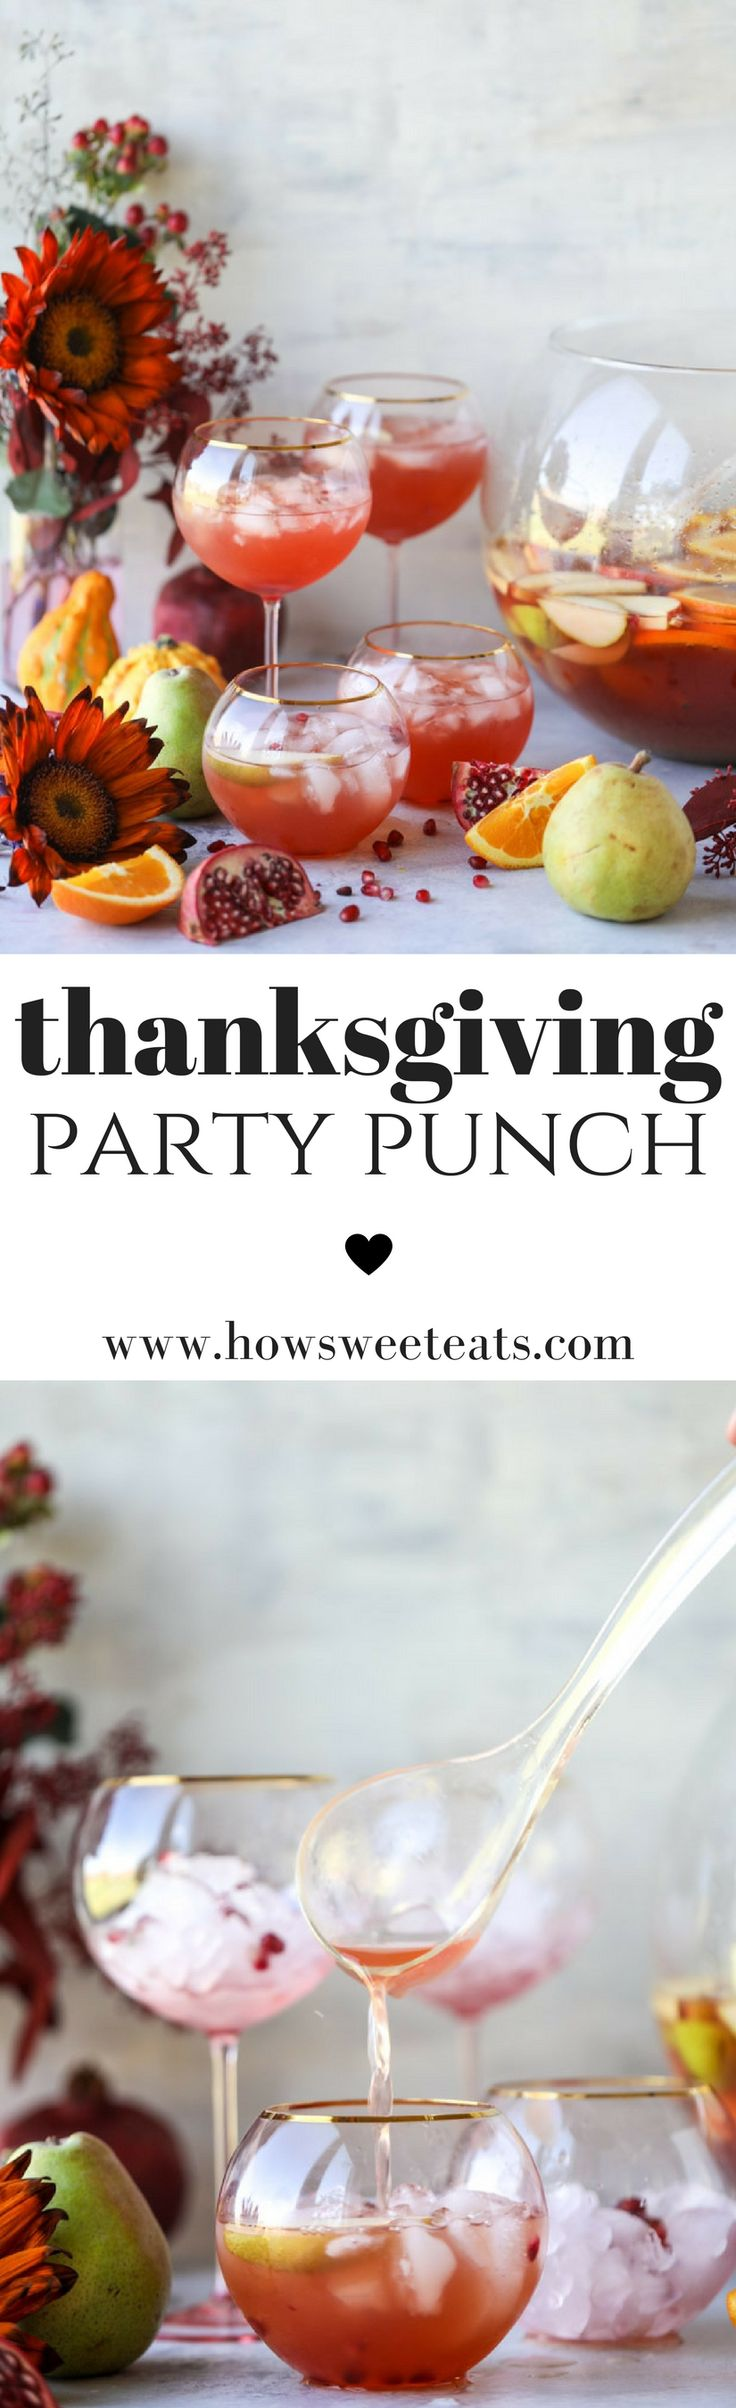 Thanksgiving Party Punch I howsweeteats.com #thanksgiving #cocktails #recipes